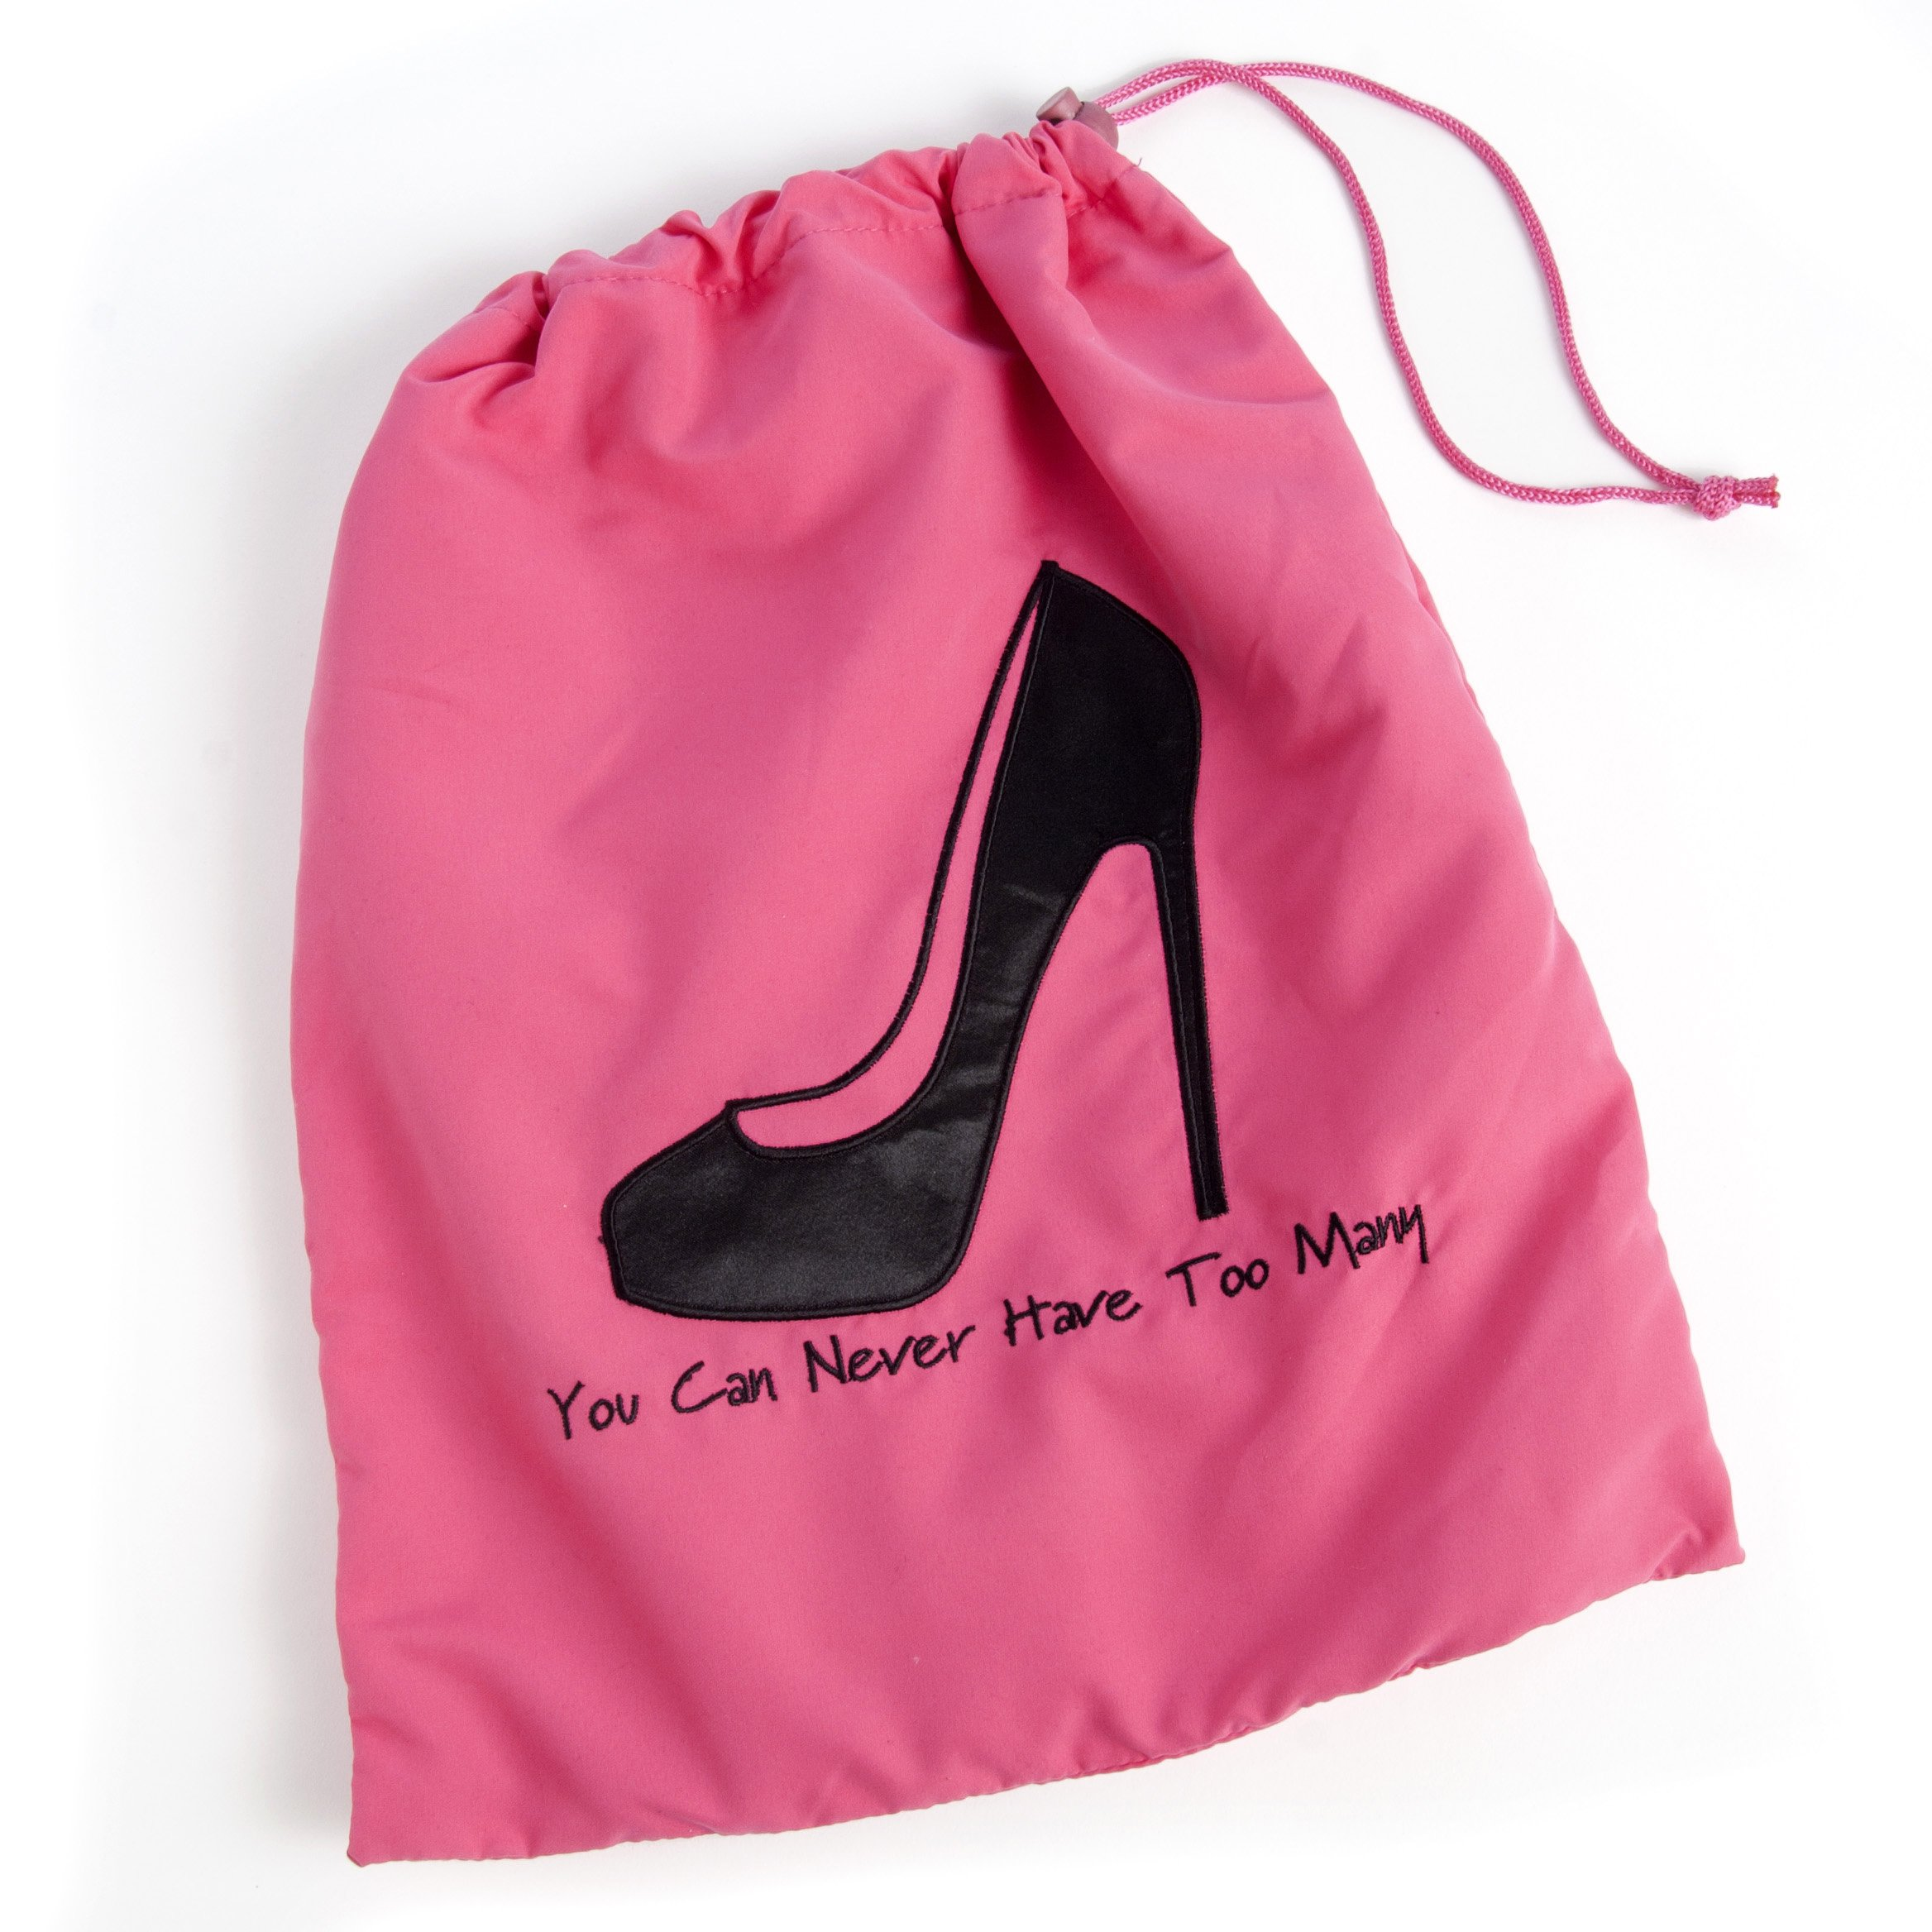 Miamica Shoe Bag You Can Never Have Too Many, Fuchsia, One Size